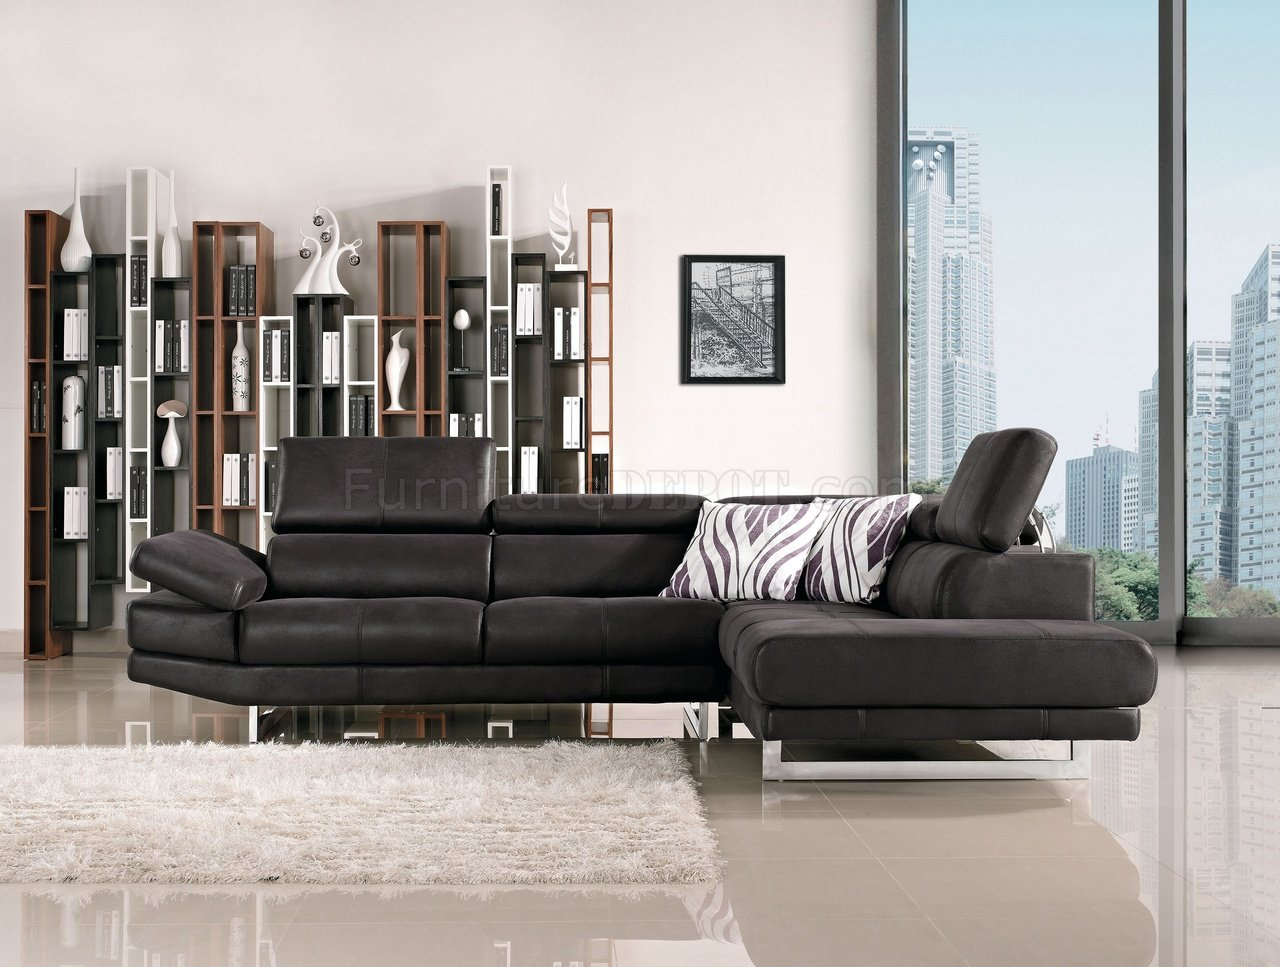 Black Fabric Modern Sectional Sofa W/Adjustable Headrest Throughout Wynne Contemporary Sectional Sofas Black (View 4 of 15)